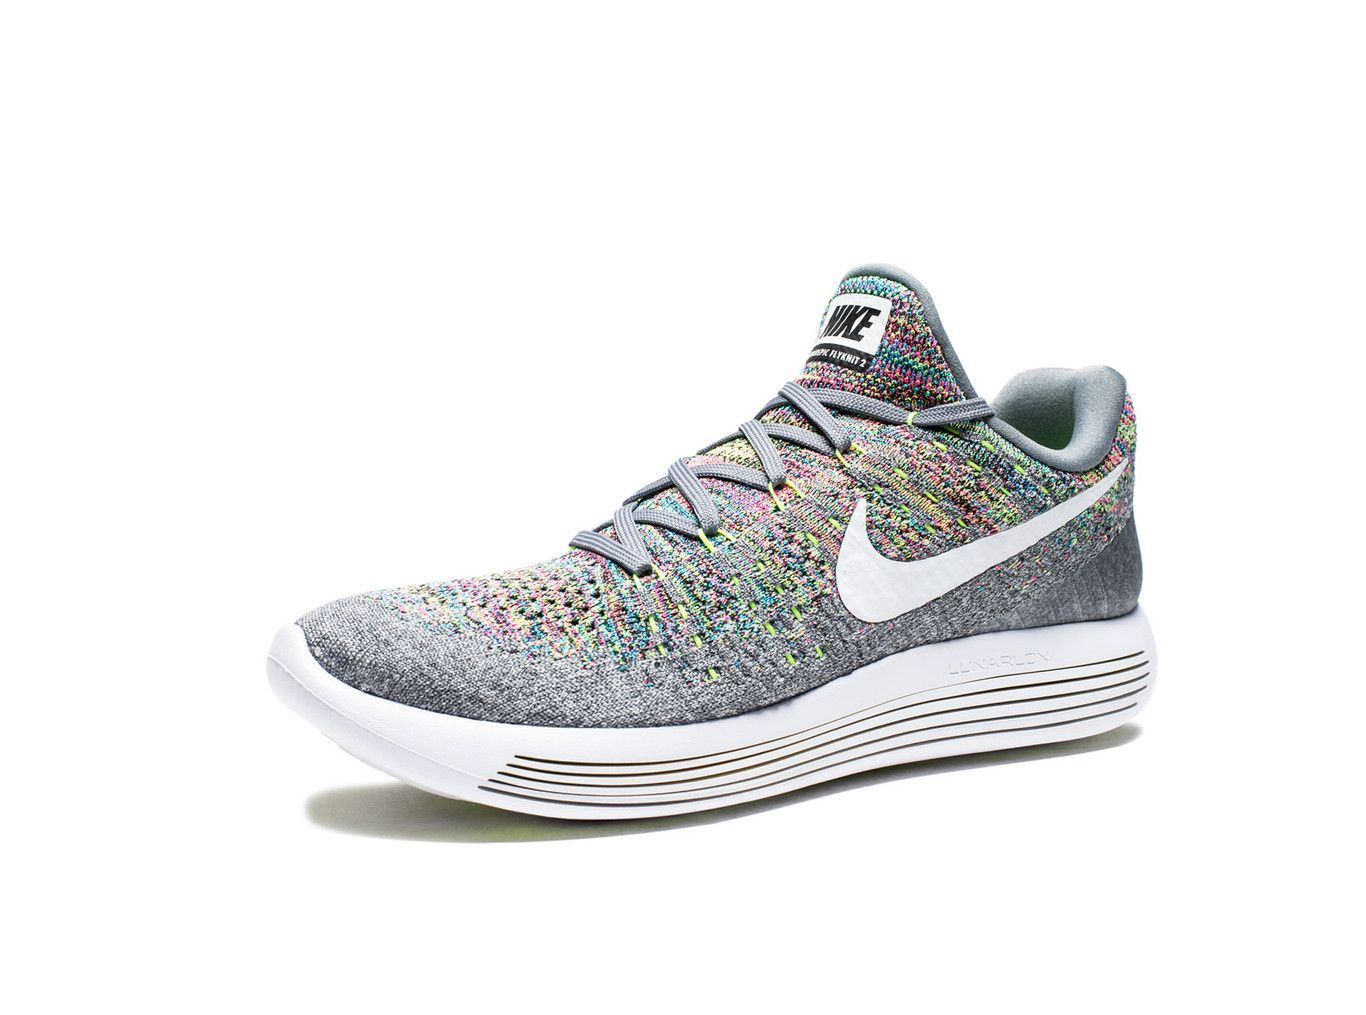 a78398f9a240 NIKE LUNAREPIC LOW FLYKNIT 2 - COOL GREY WHITE VOLT BLUE GLOW ...